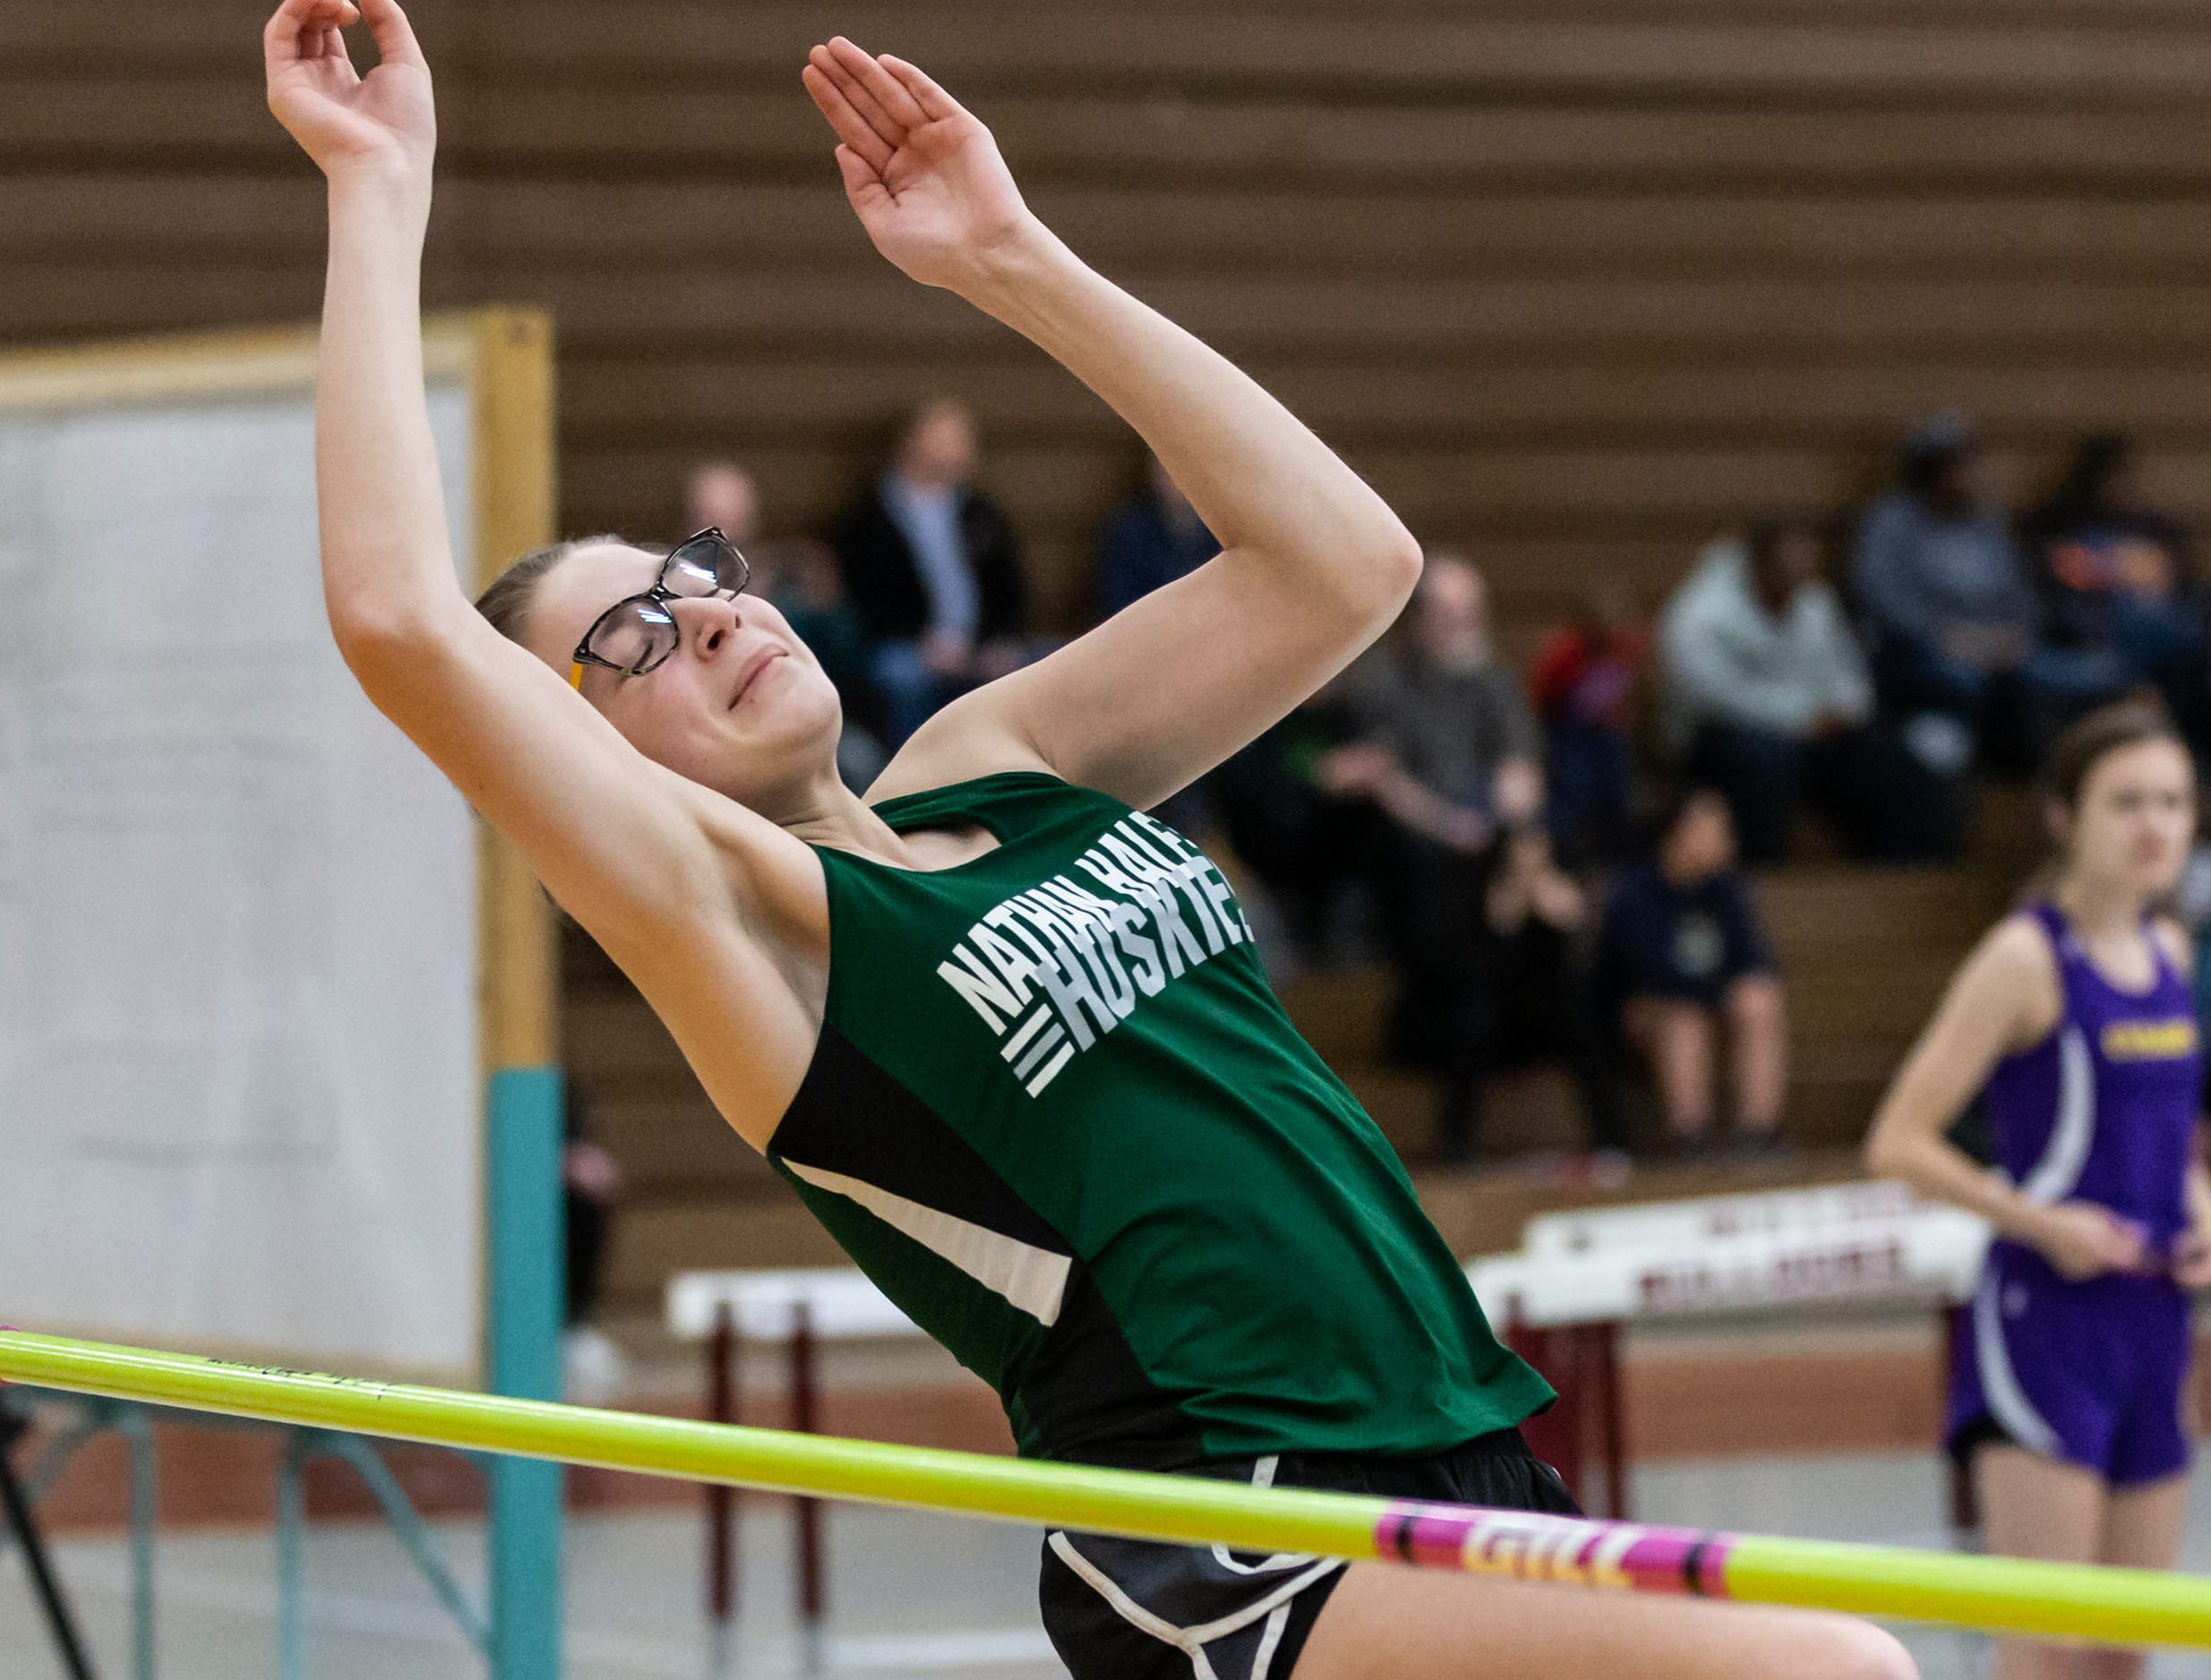 West Allis Nathan Hale's Sophie Kabb competes on the high jump at the Reinhard Bulldog Relays hosted by West Allis Central on Friday, March 15, 2019.